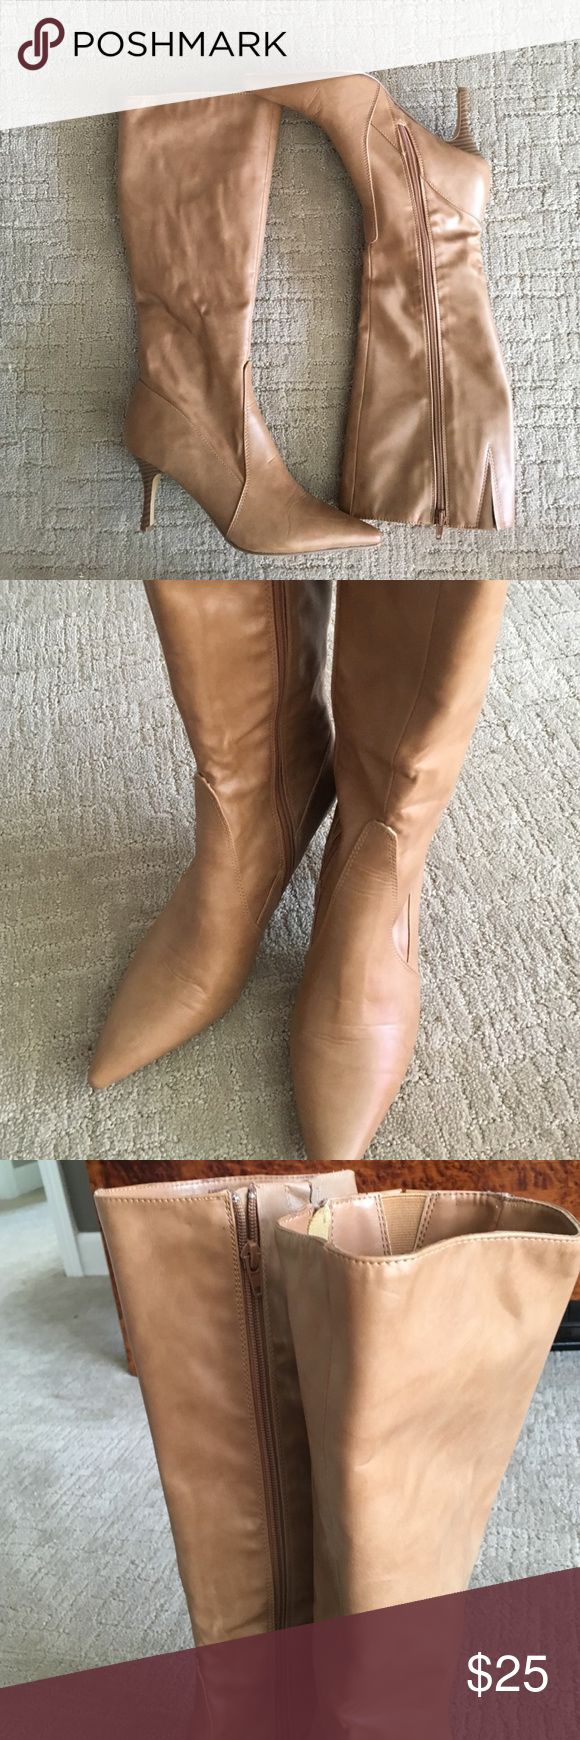 Charles by Charles David knee high boots Charles by Charles David Carmel/ tan knee high boots - zip leg barley worn.  Almost new condition!!! Charles David Shoes Heeled Boots